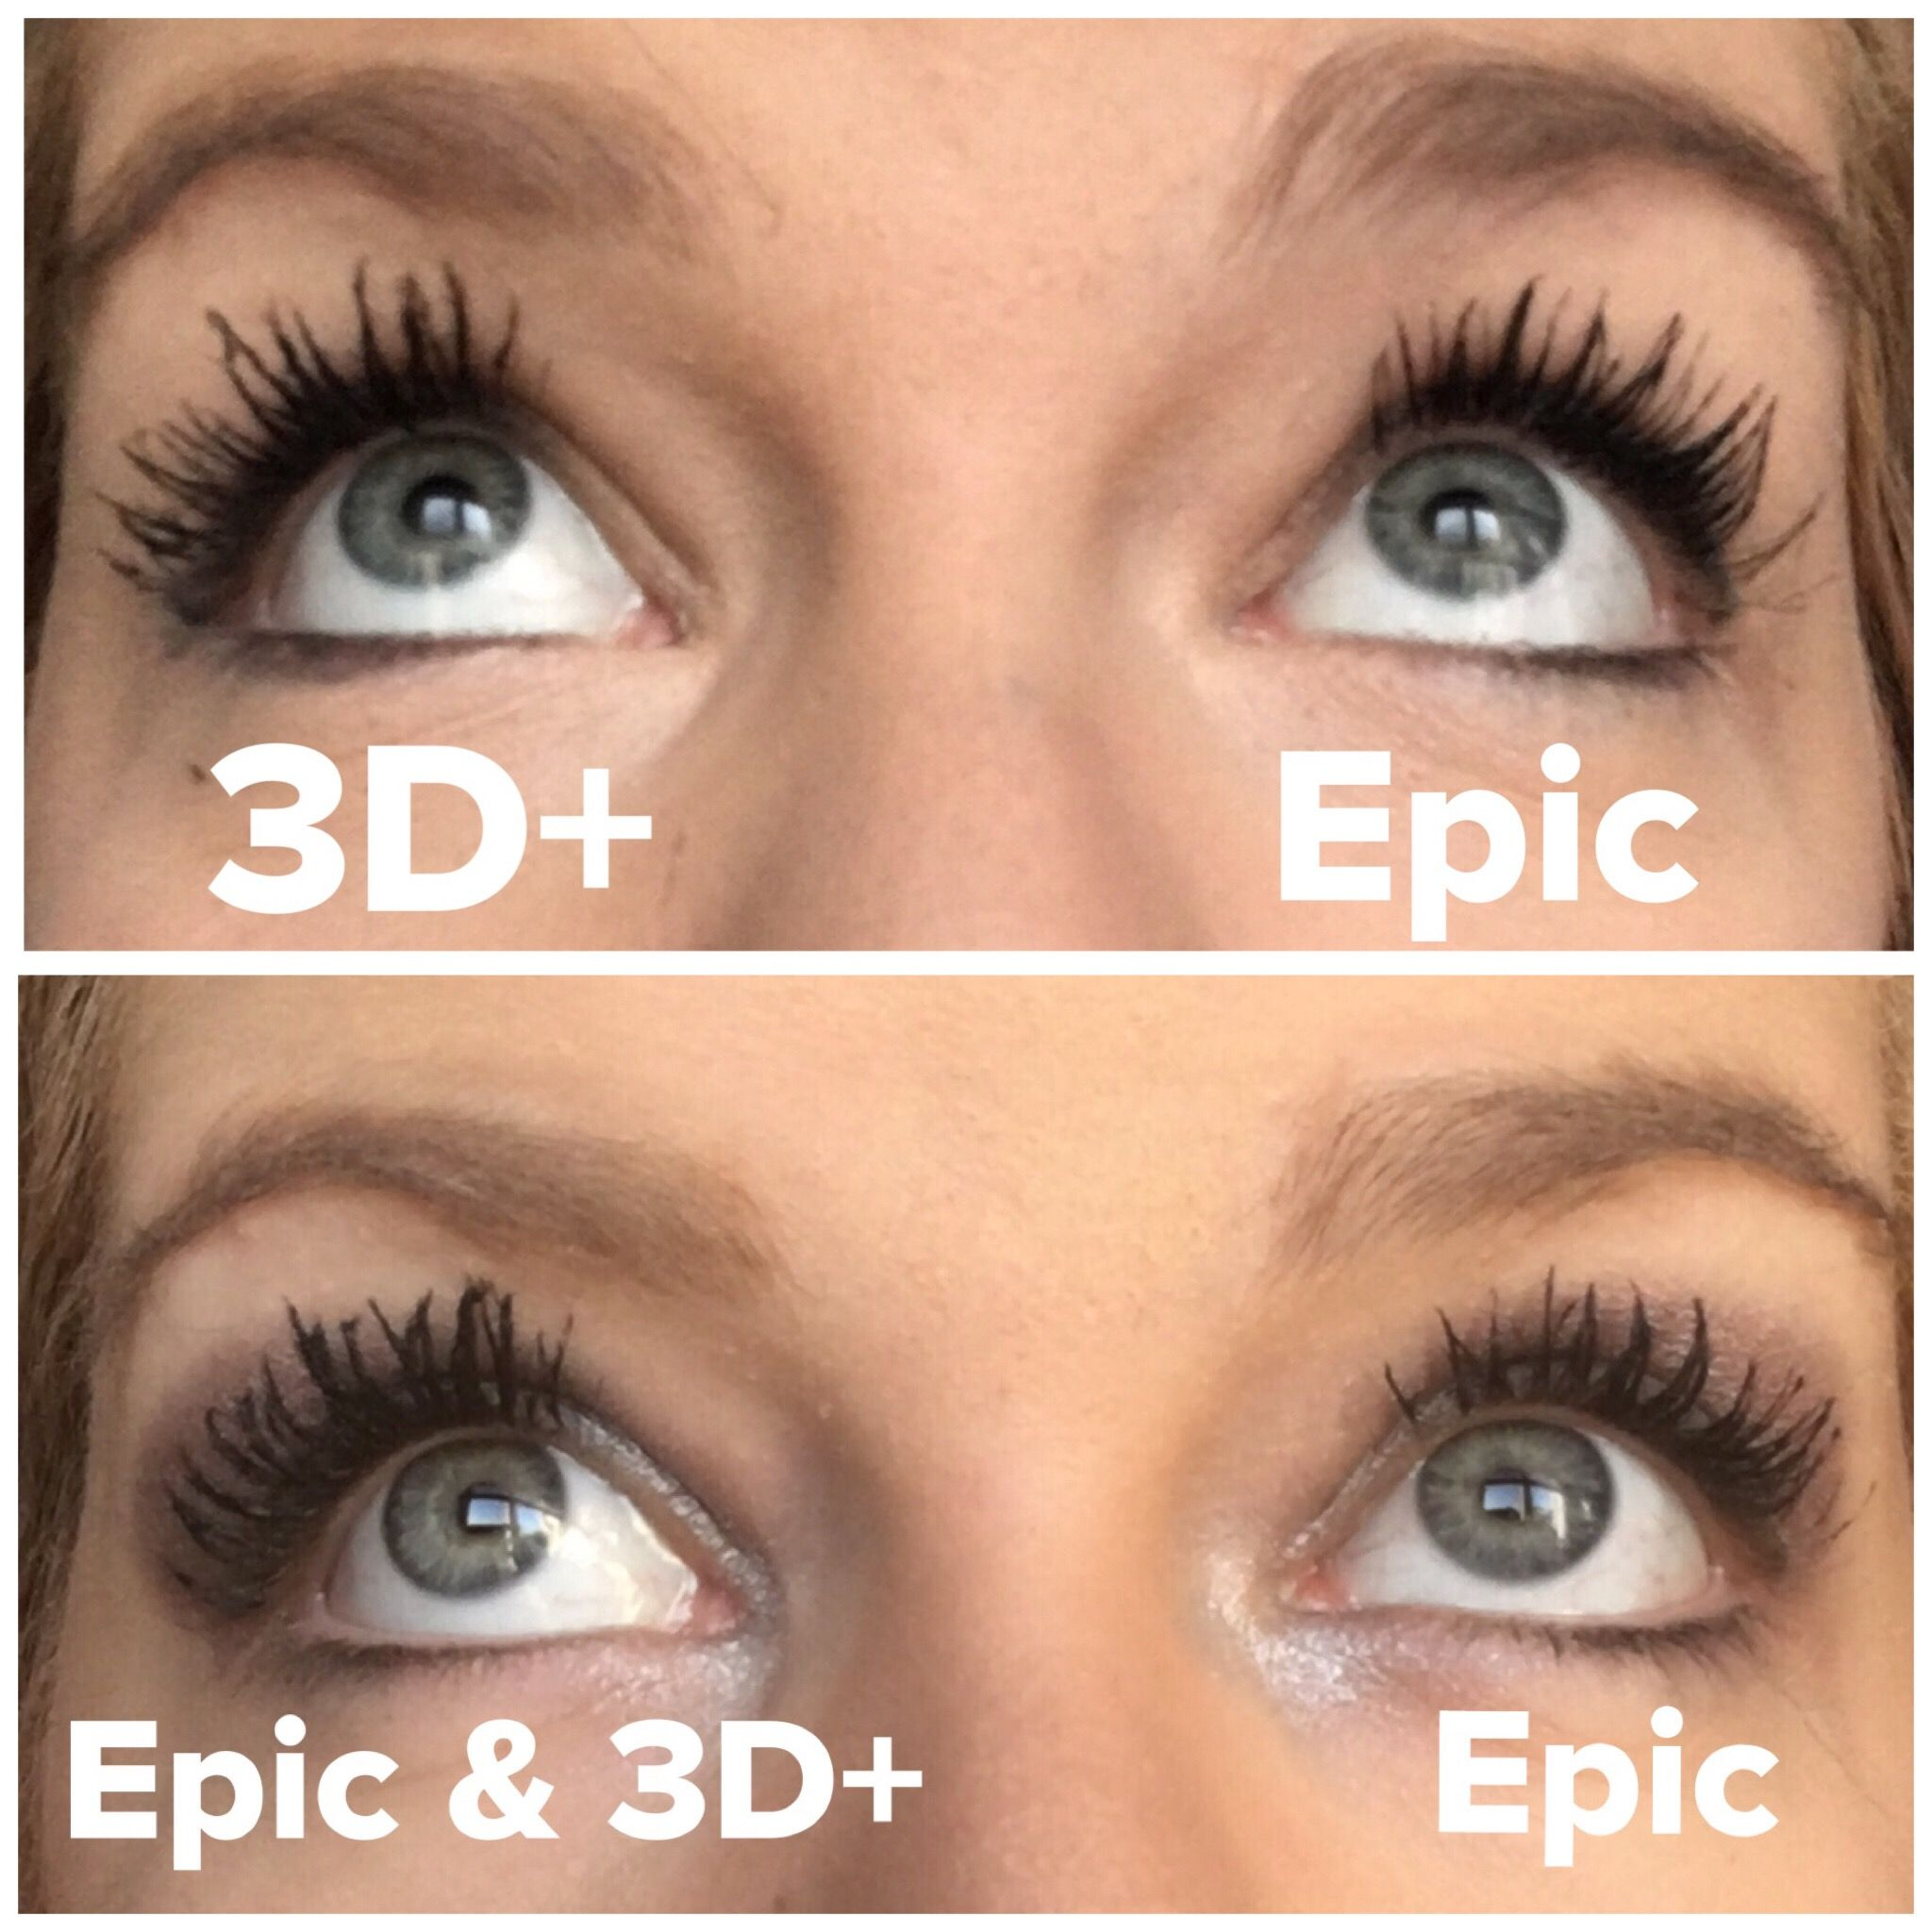 621d38a3962 You need the lash serum, epic mascara and 3d fibre lash mascara in your  life right now !!